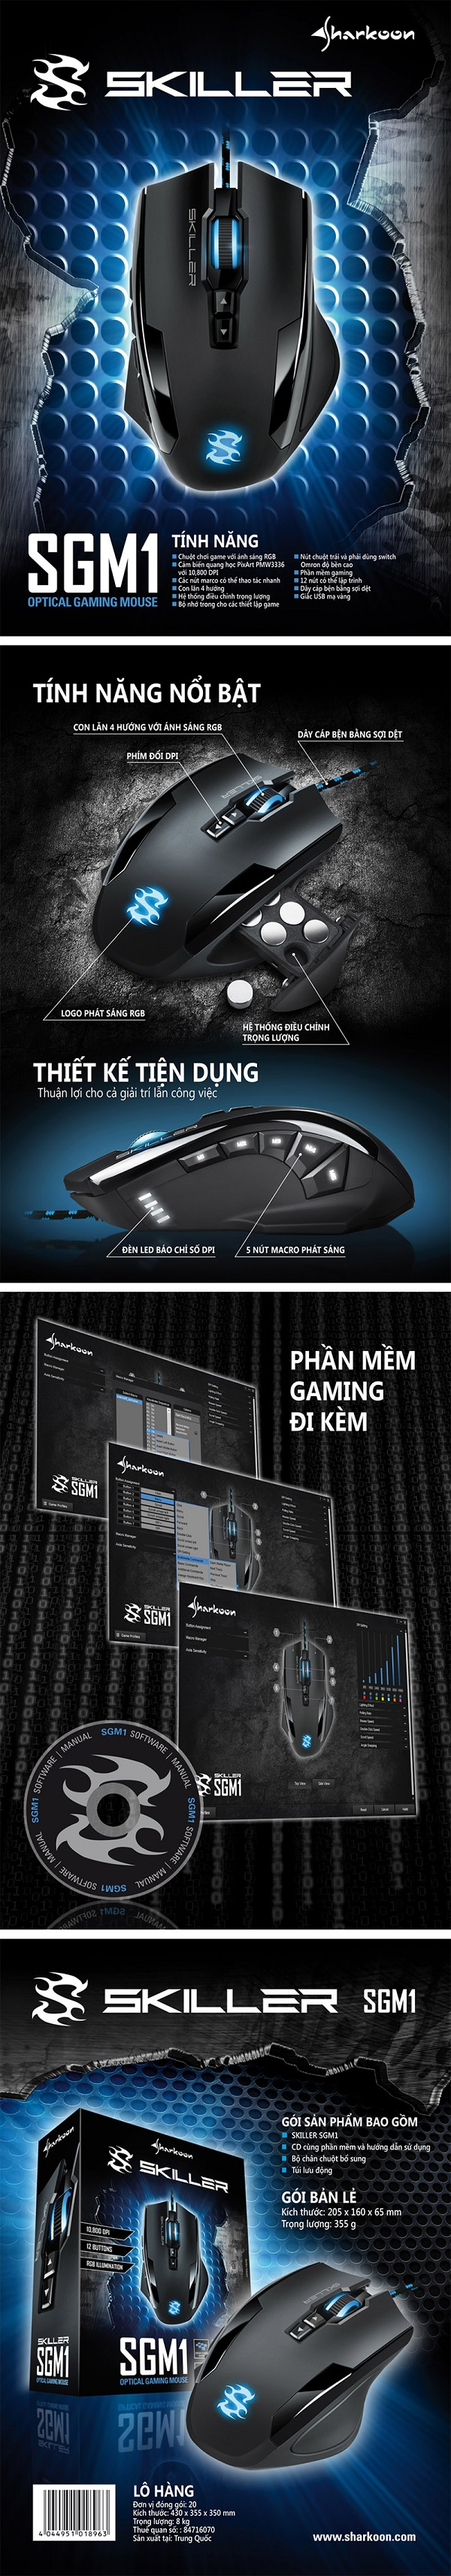 Chuột gaming Sharkoon SKILLER SGM1